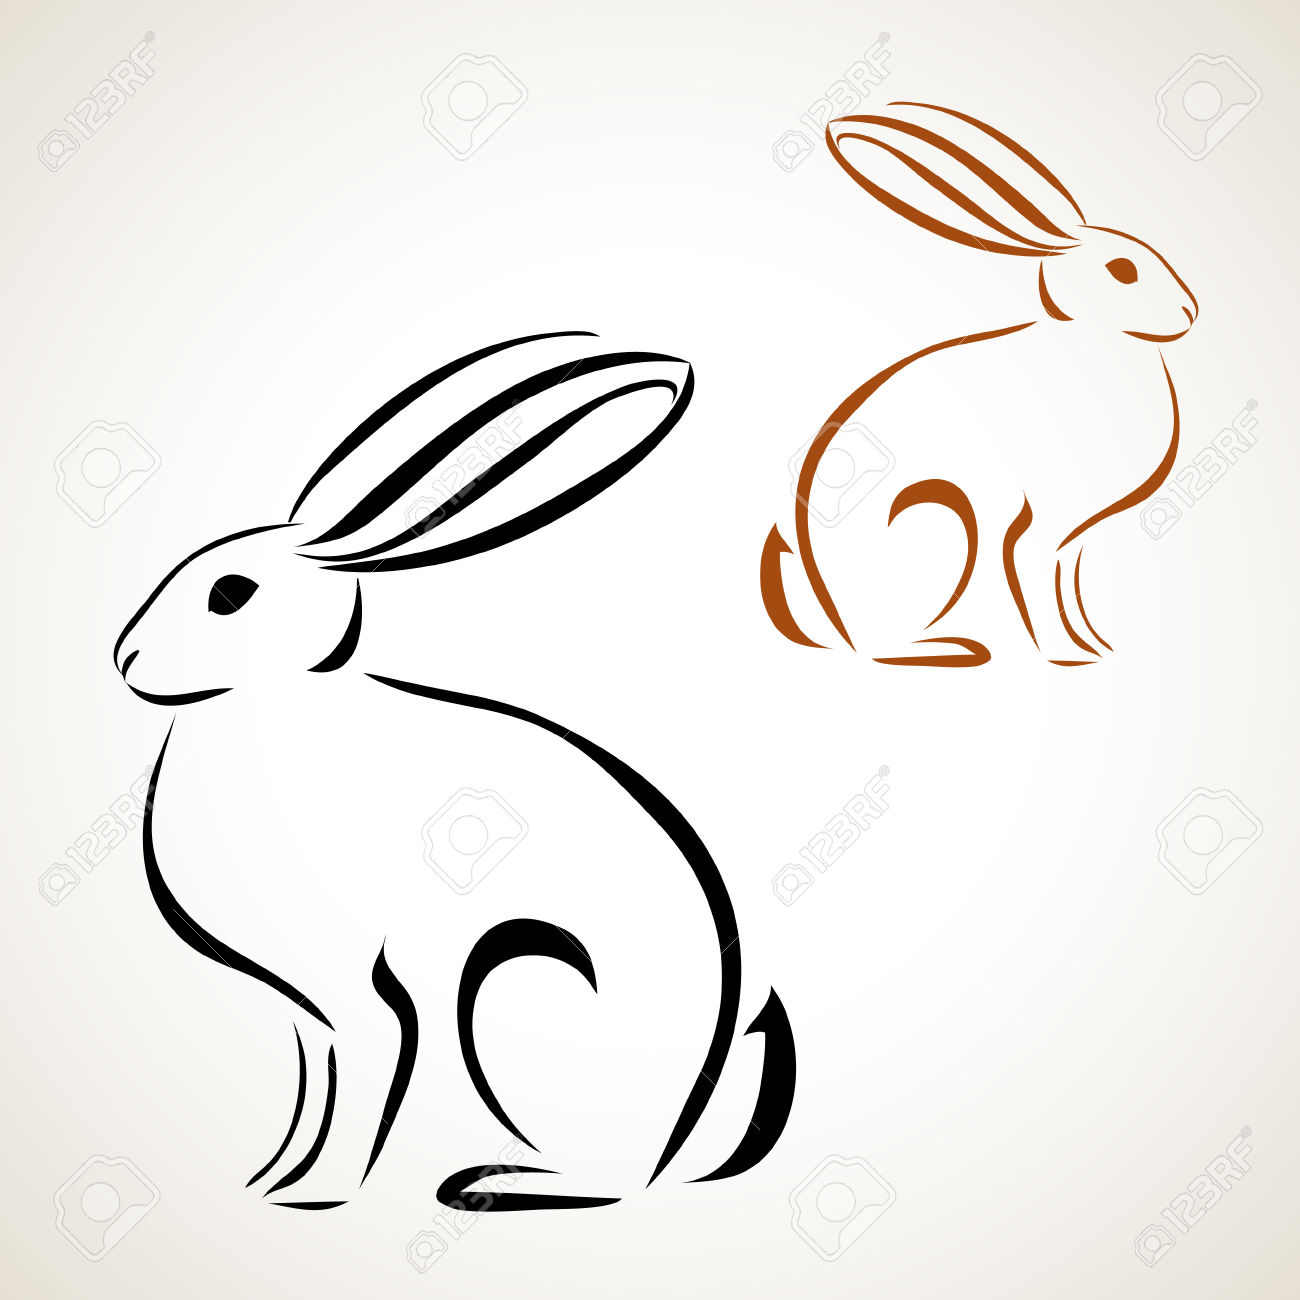 1300x1300 Easter Card With Rabbit Outline Royalty Free Cliparts, Vectors